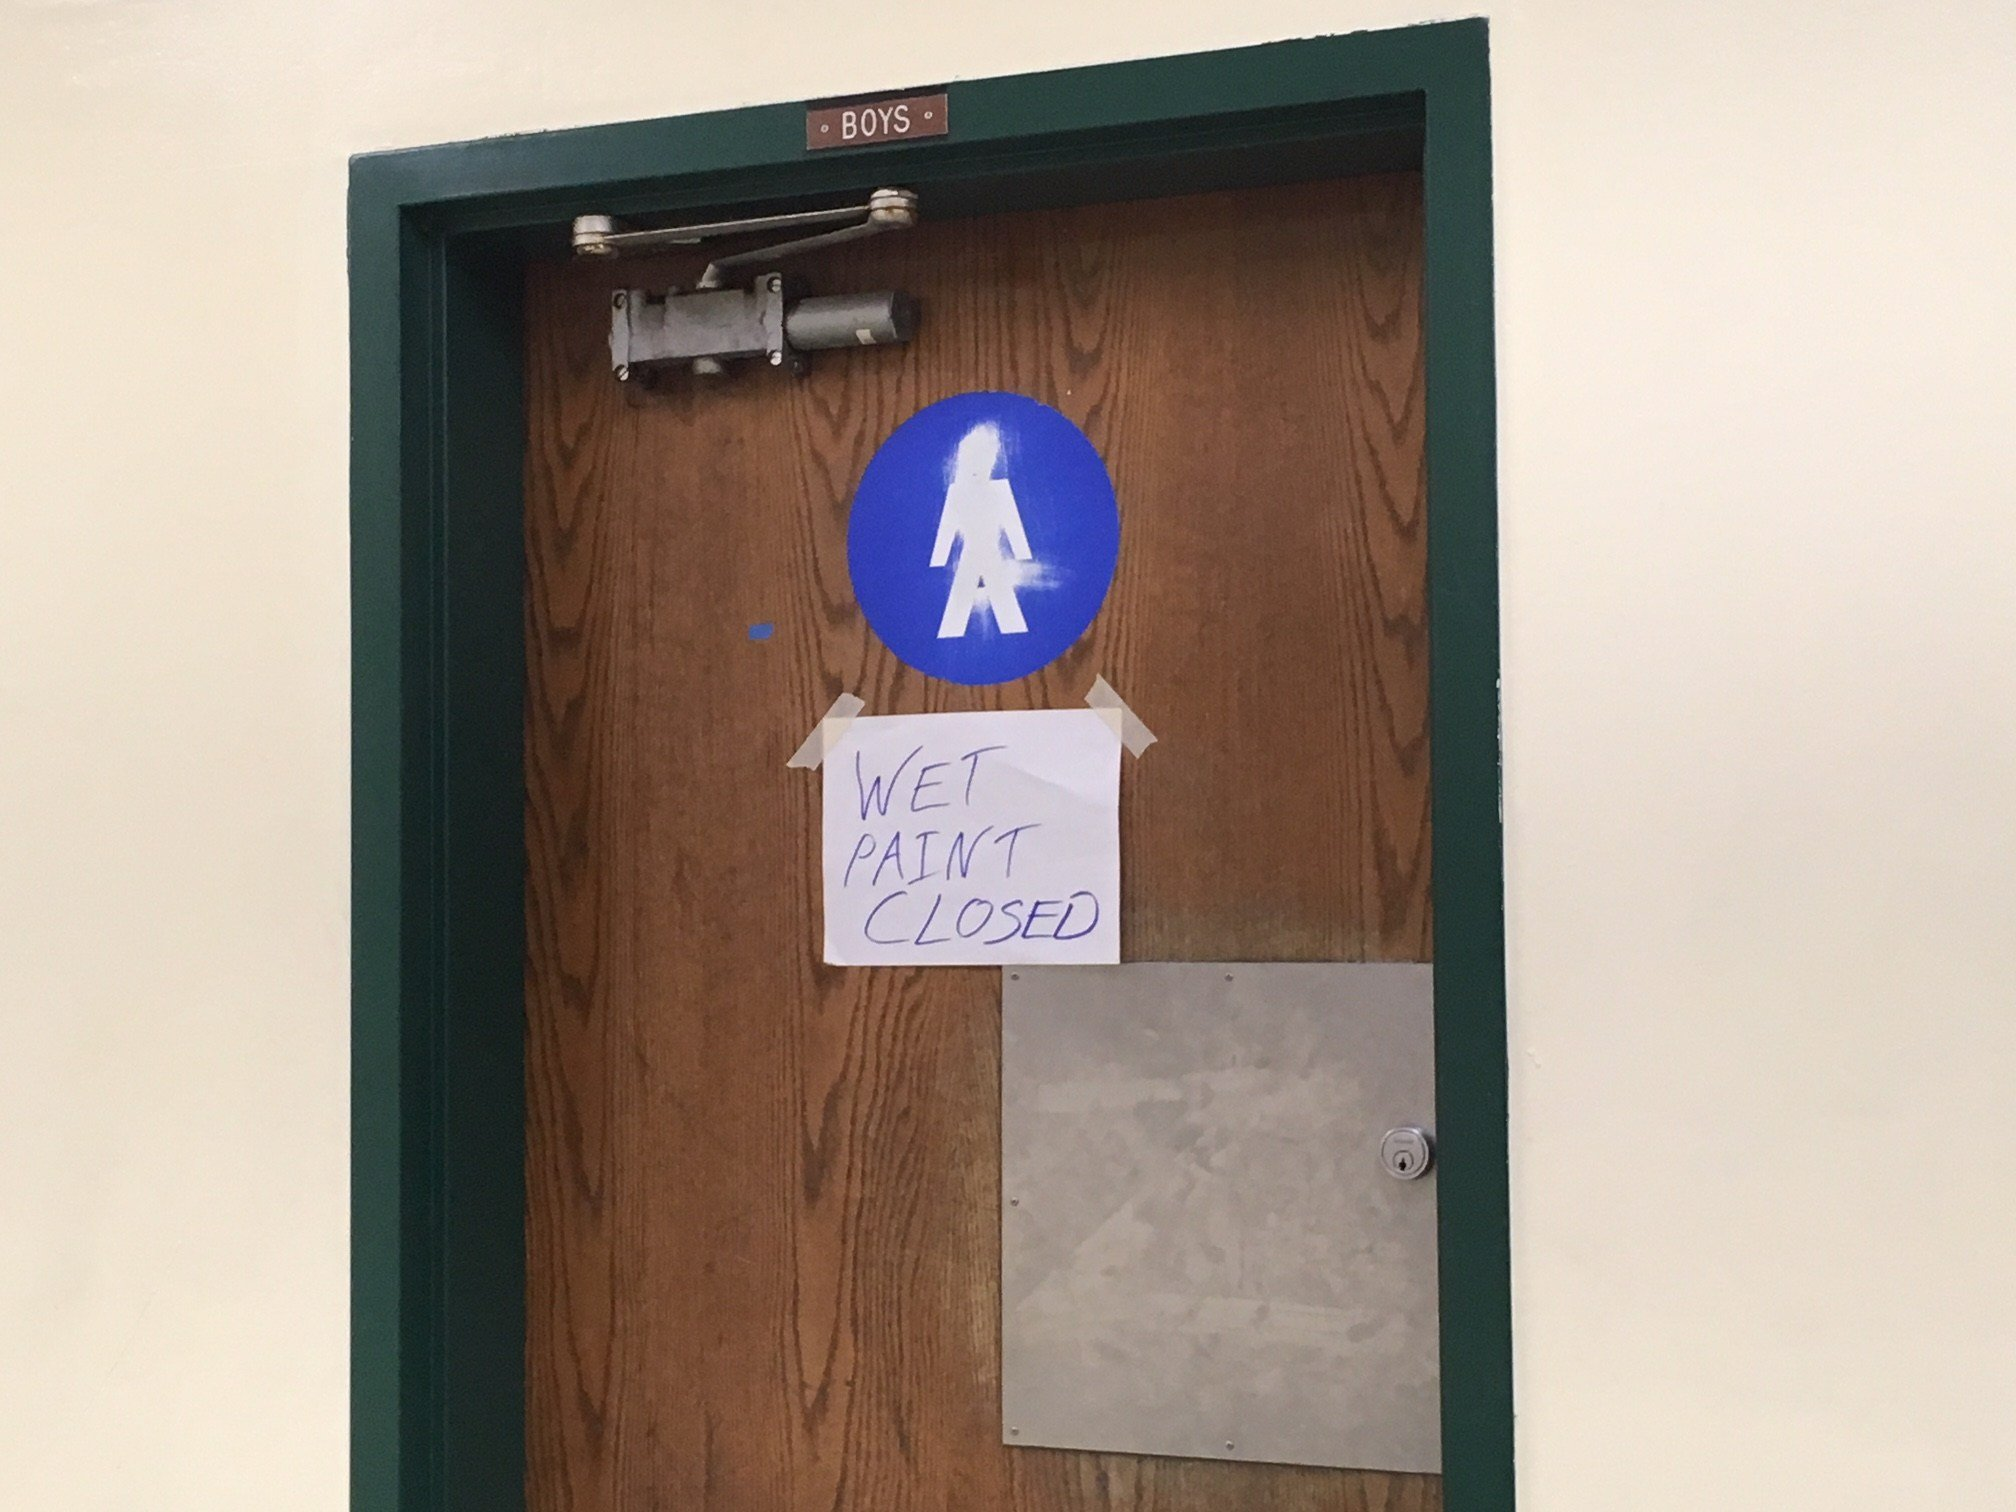 The bathroom at Cleveland HS where racist graffiti was discovered. (KPTV)